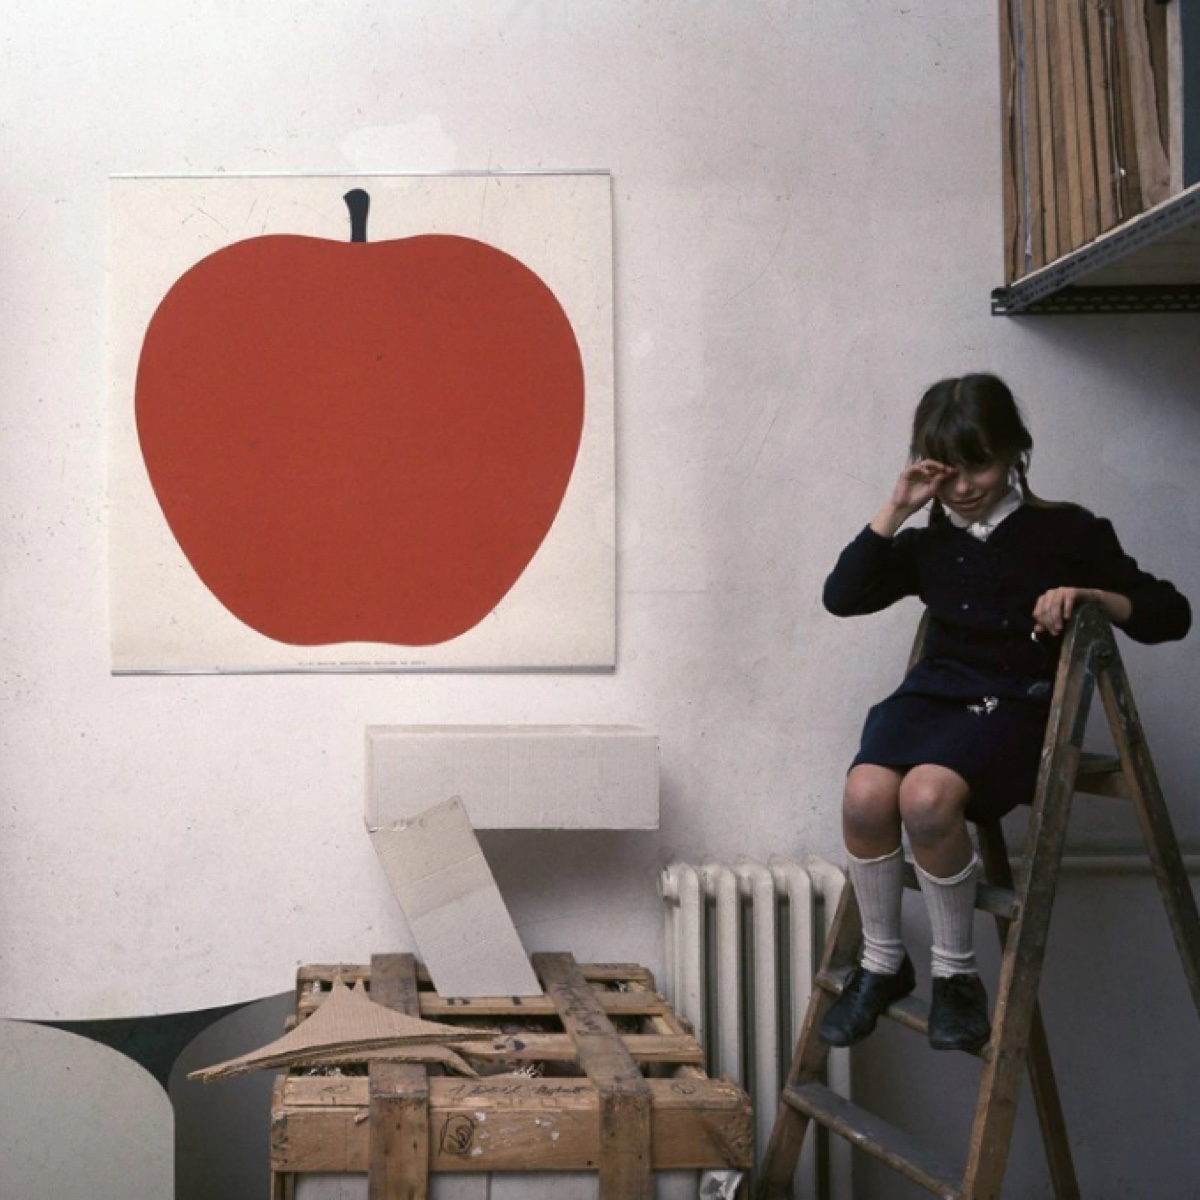 A series of graphic prints from the 1970s include images of an apple, a pear, and several animals.